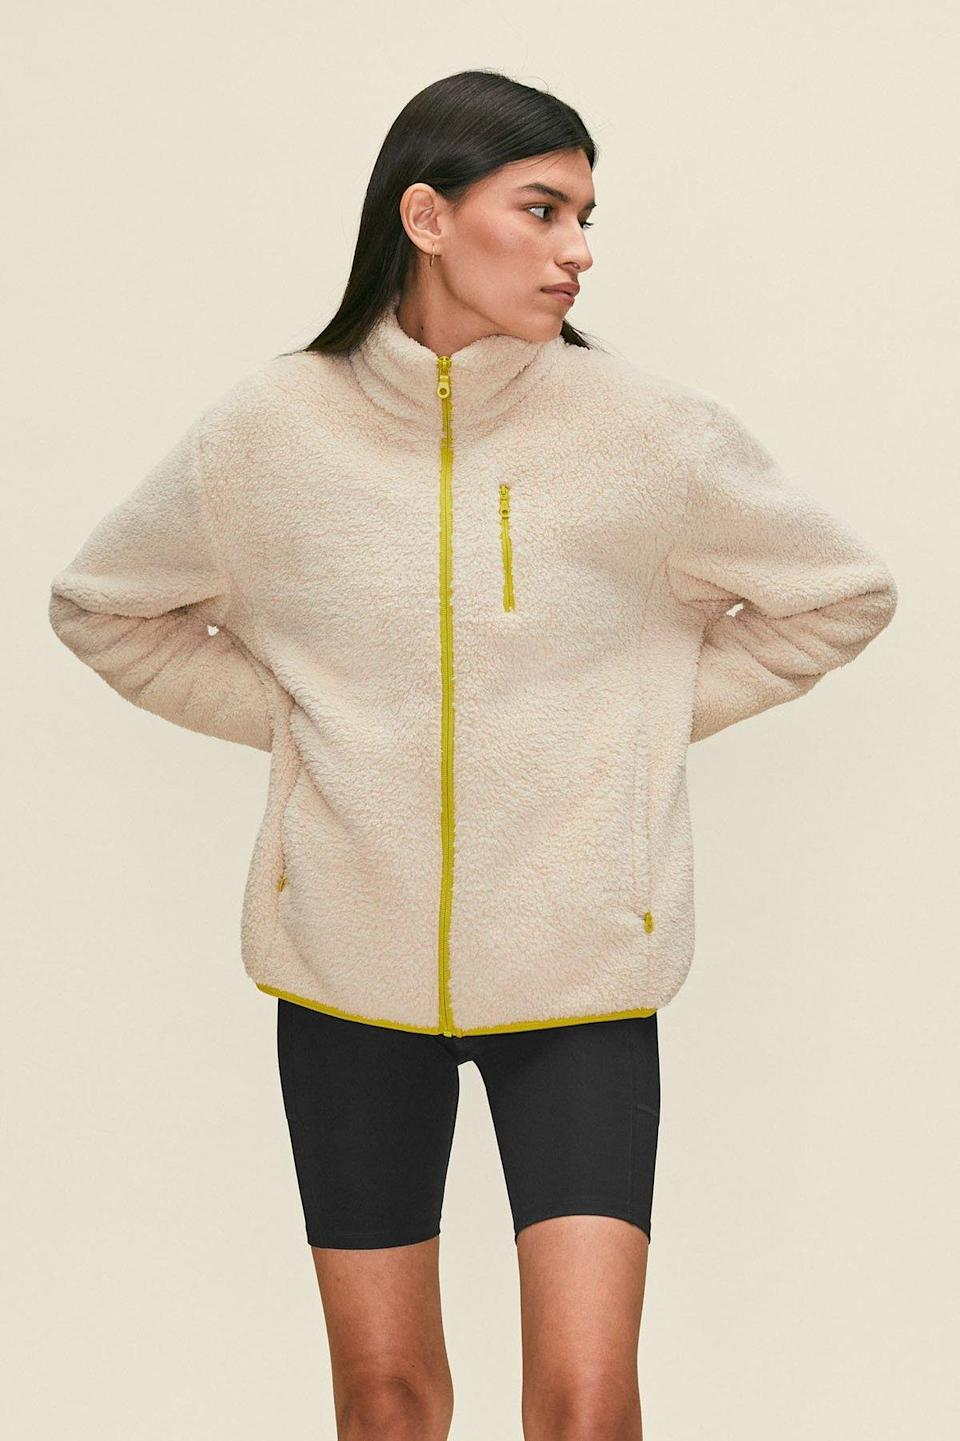 """Whether you're heading to and from the grocery store or taking a walk around the block, cozy up in this chic sherpa piece any time you're heading out the door. $128, Girlfriend Collective. <a href=""""https://www.girlfriend.com/products/cream-full-zip-sherpa"""" rel=""""nofollow noopener"""" target=""""_blank"""" data-ylk=""""slk:Get it now!"""" class=""""link rapid-noclick-resp"""">Get it now!</a>"""